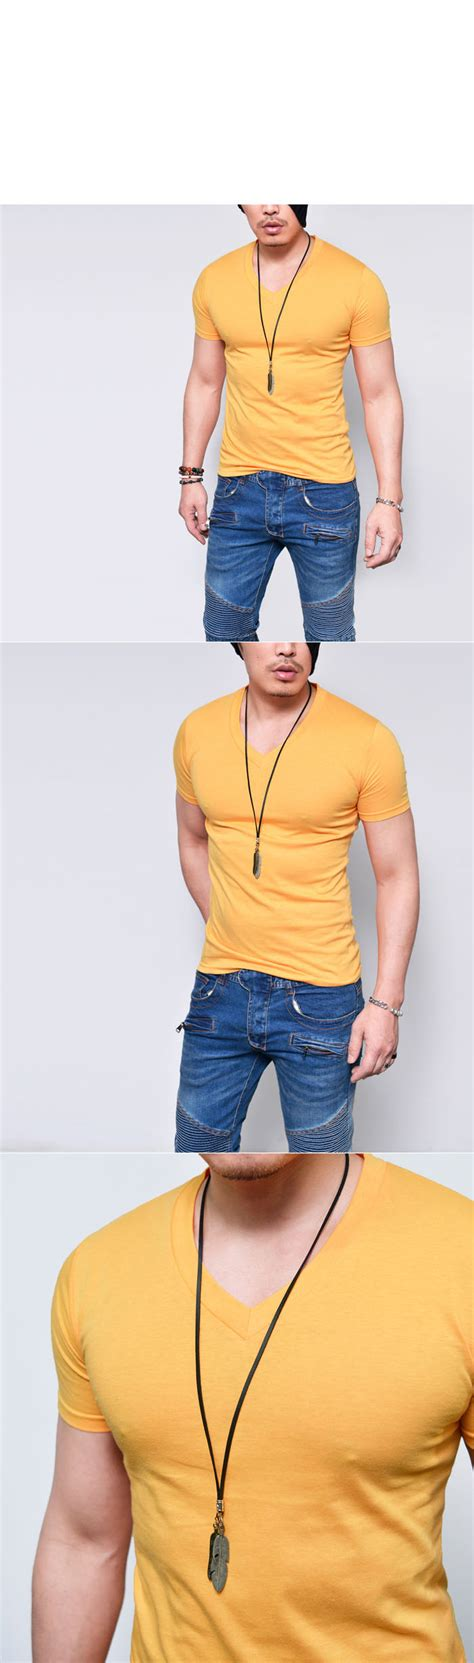 Hoodie Sweater Urbex Import Quality Yomerch Must basic mens slim fit sleeve cotton vneck tshirt xs s m l guylook ebay